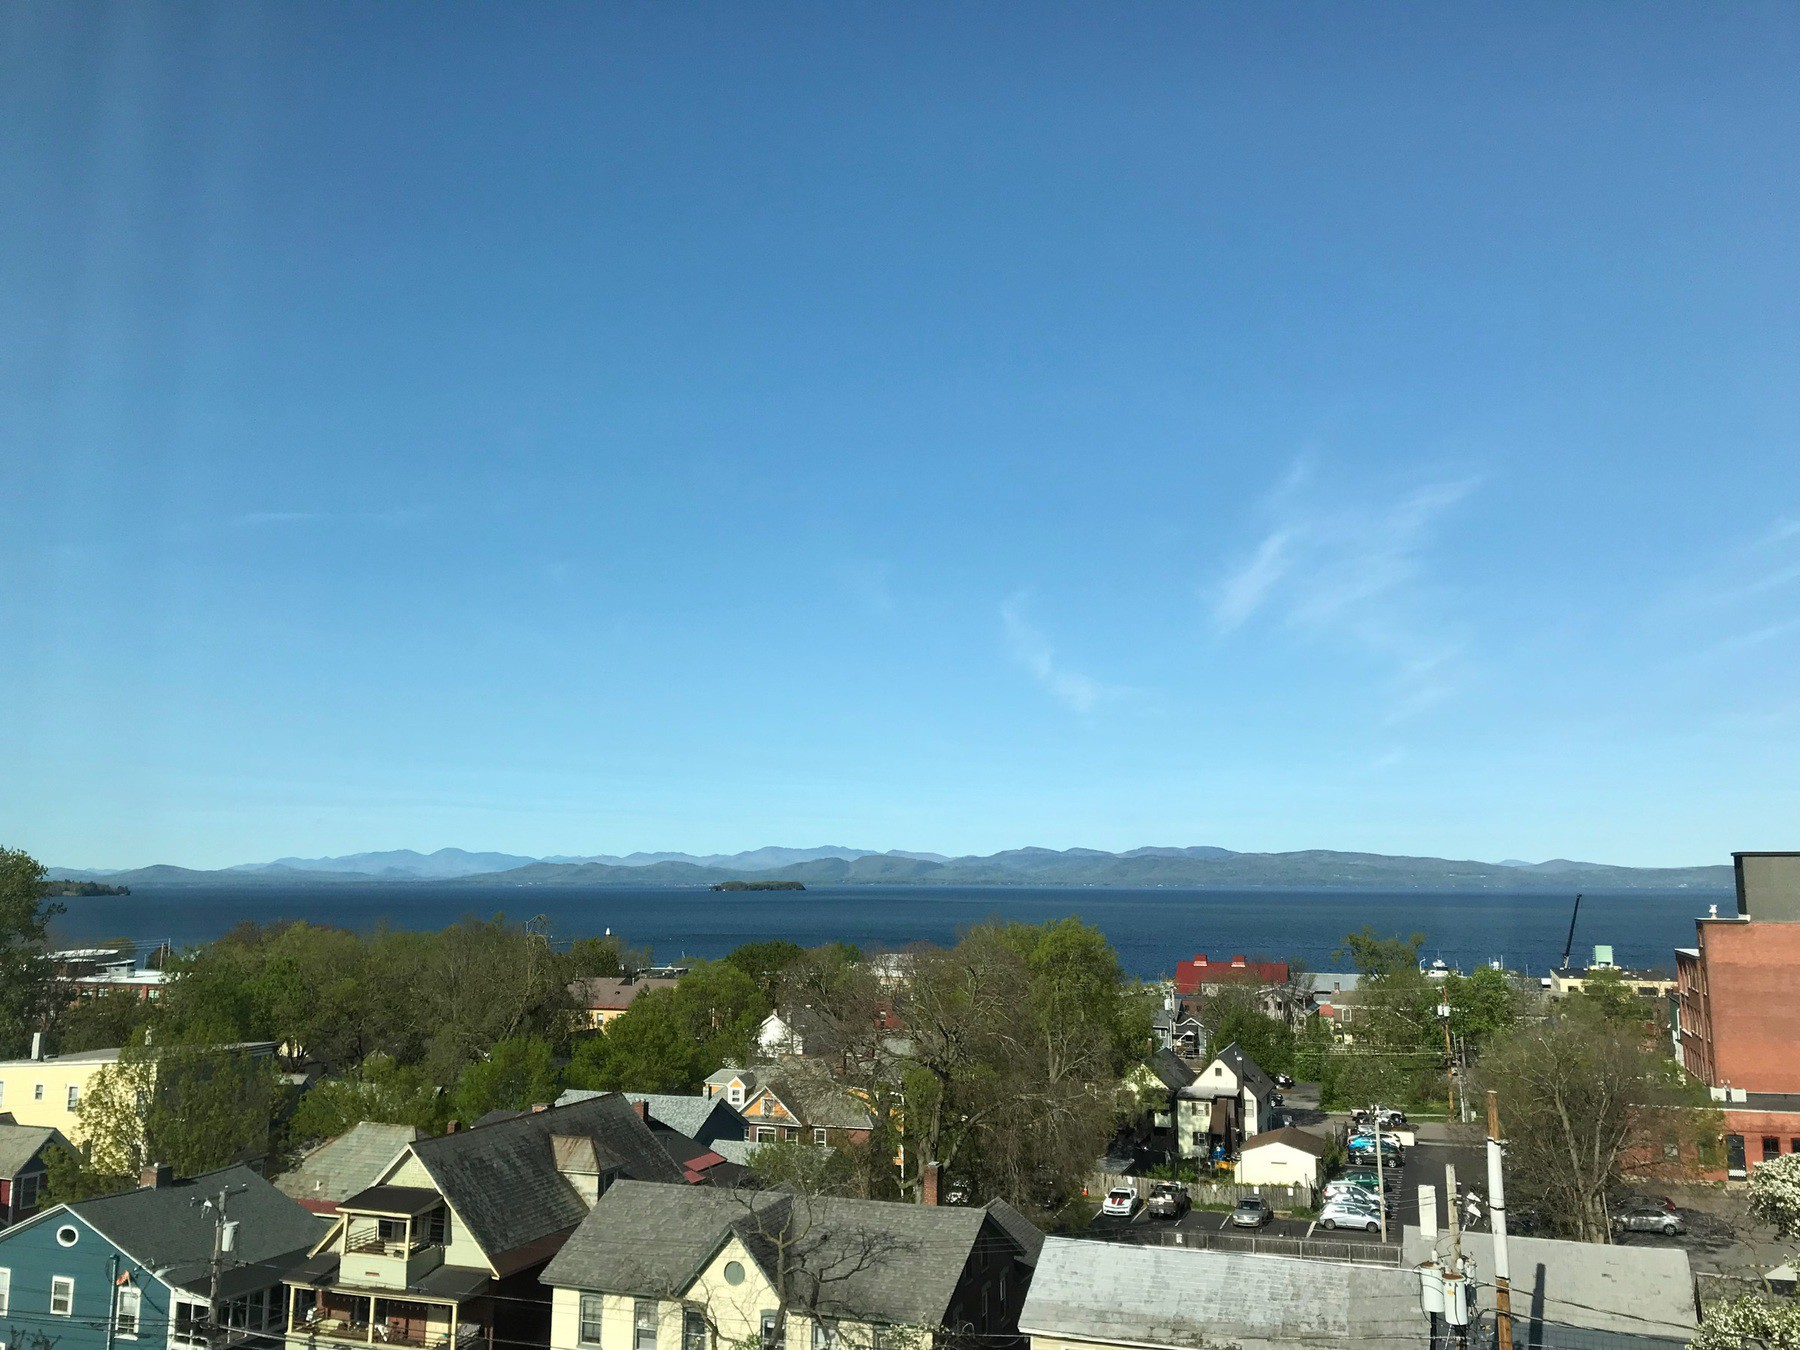 View from Burlington, VT hotel looking out across the lake